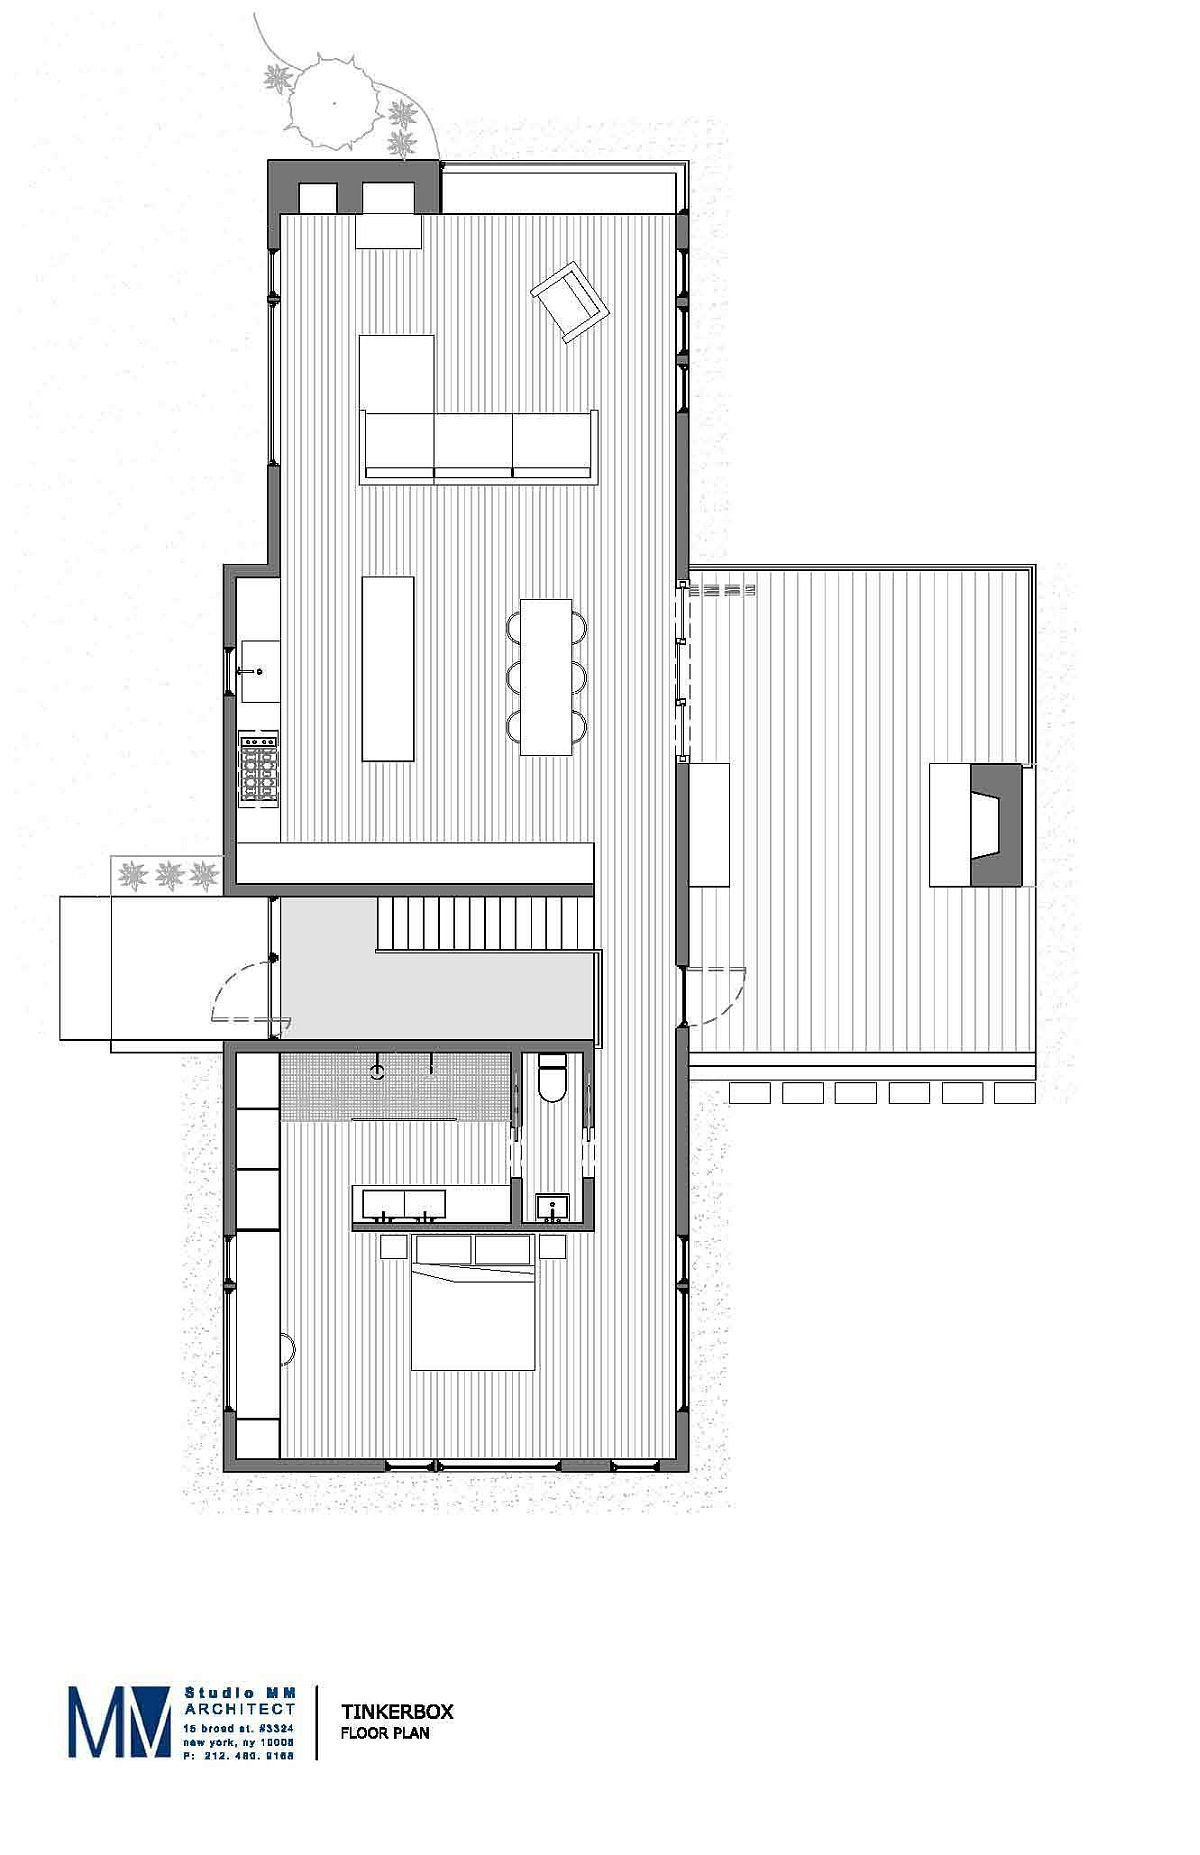 Floor Plan Of The Tinkerbox In Kerhonkson Ny Decoist House Floor Plans House Plans Floor Plans